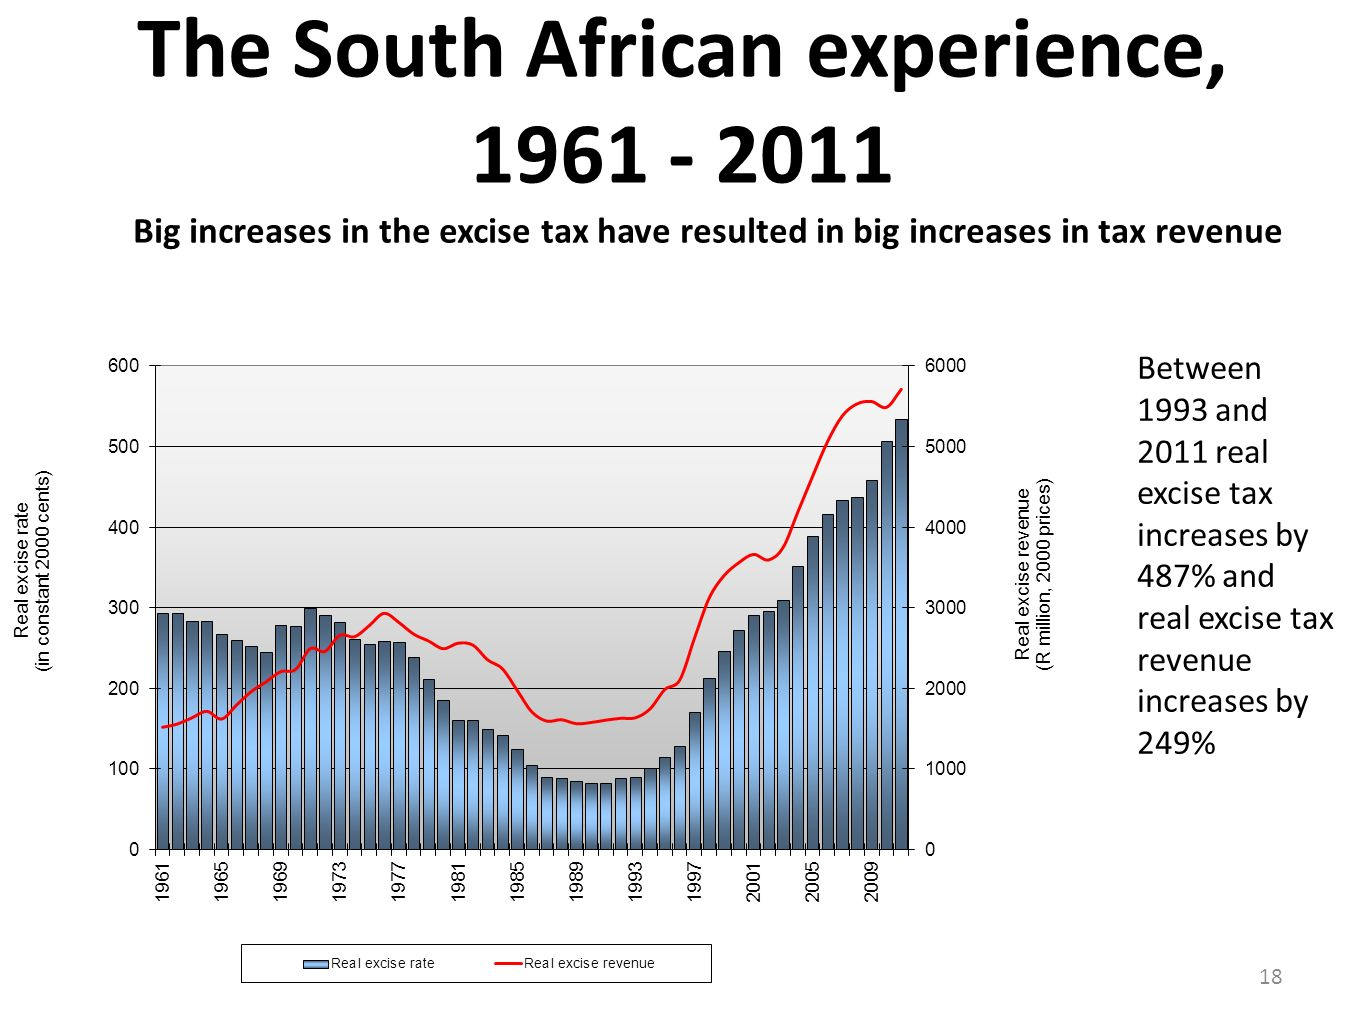 The South African experience, 1961 - 2011